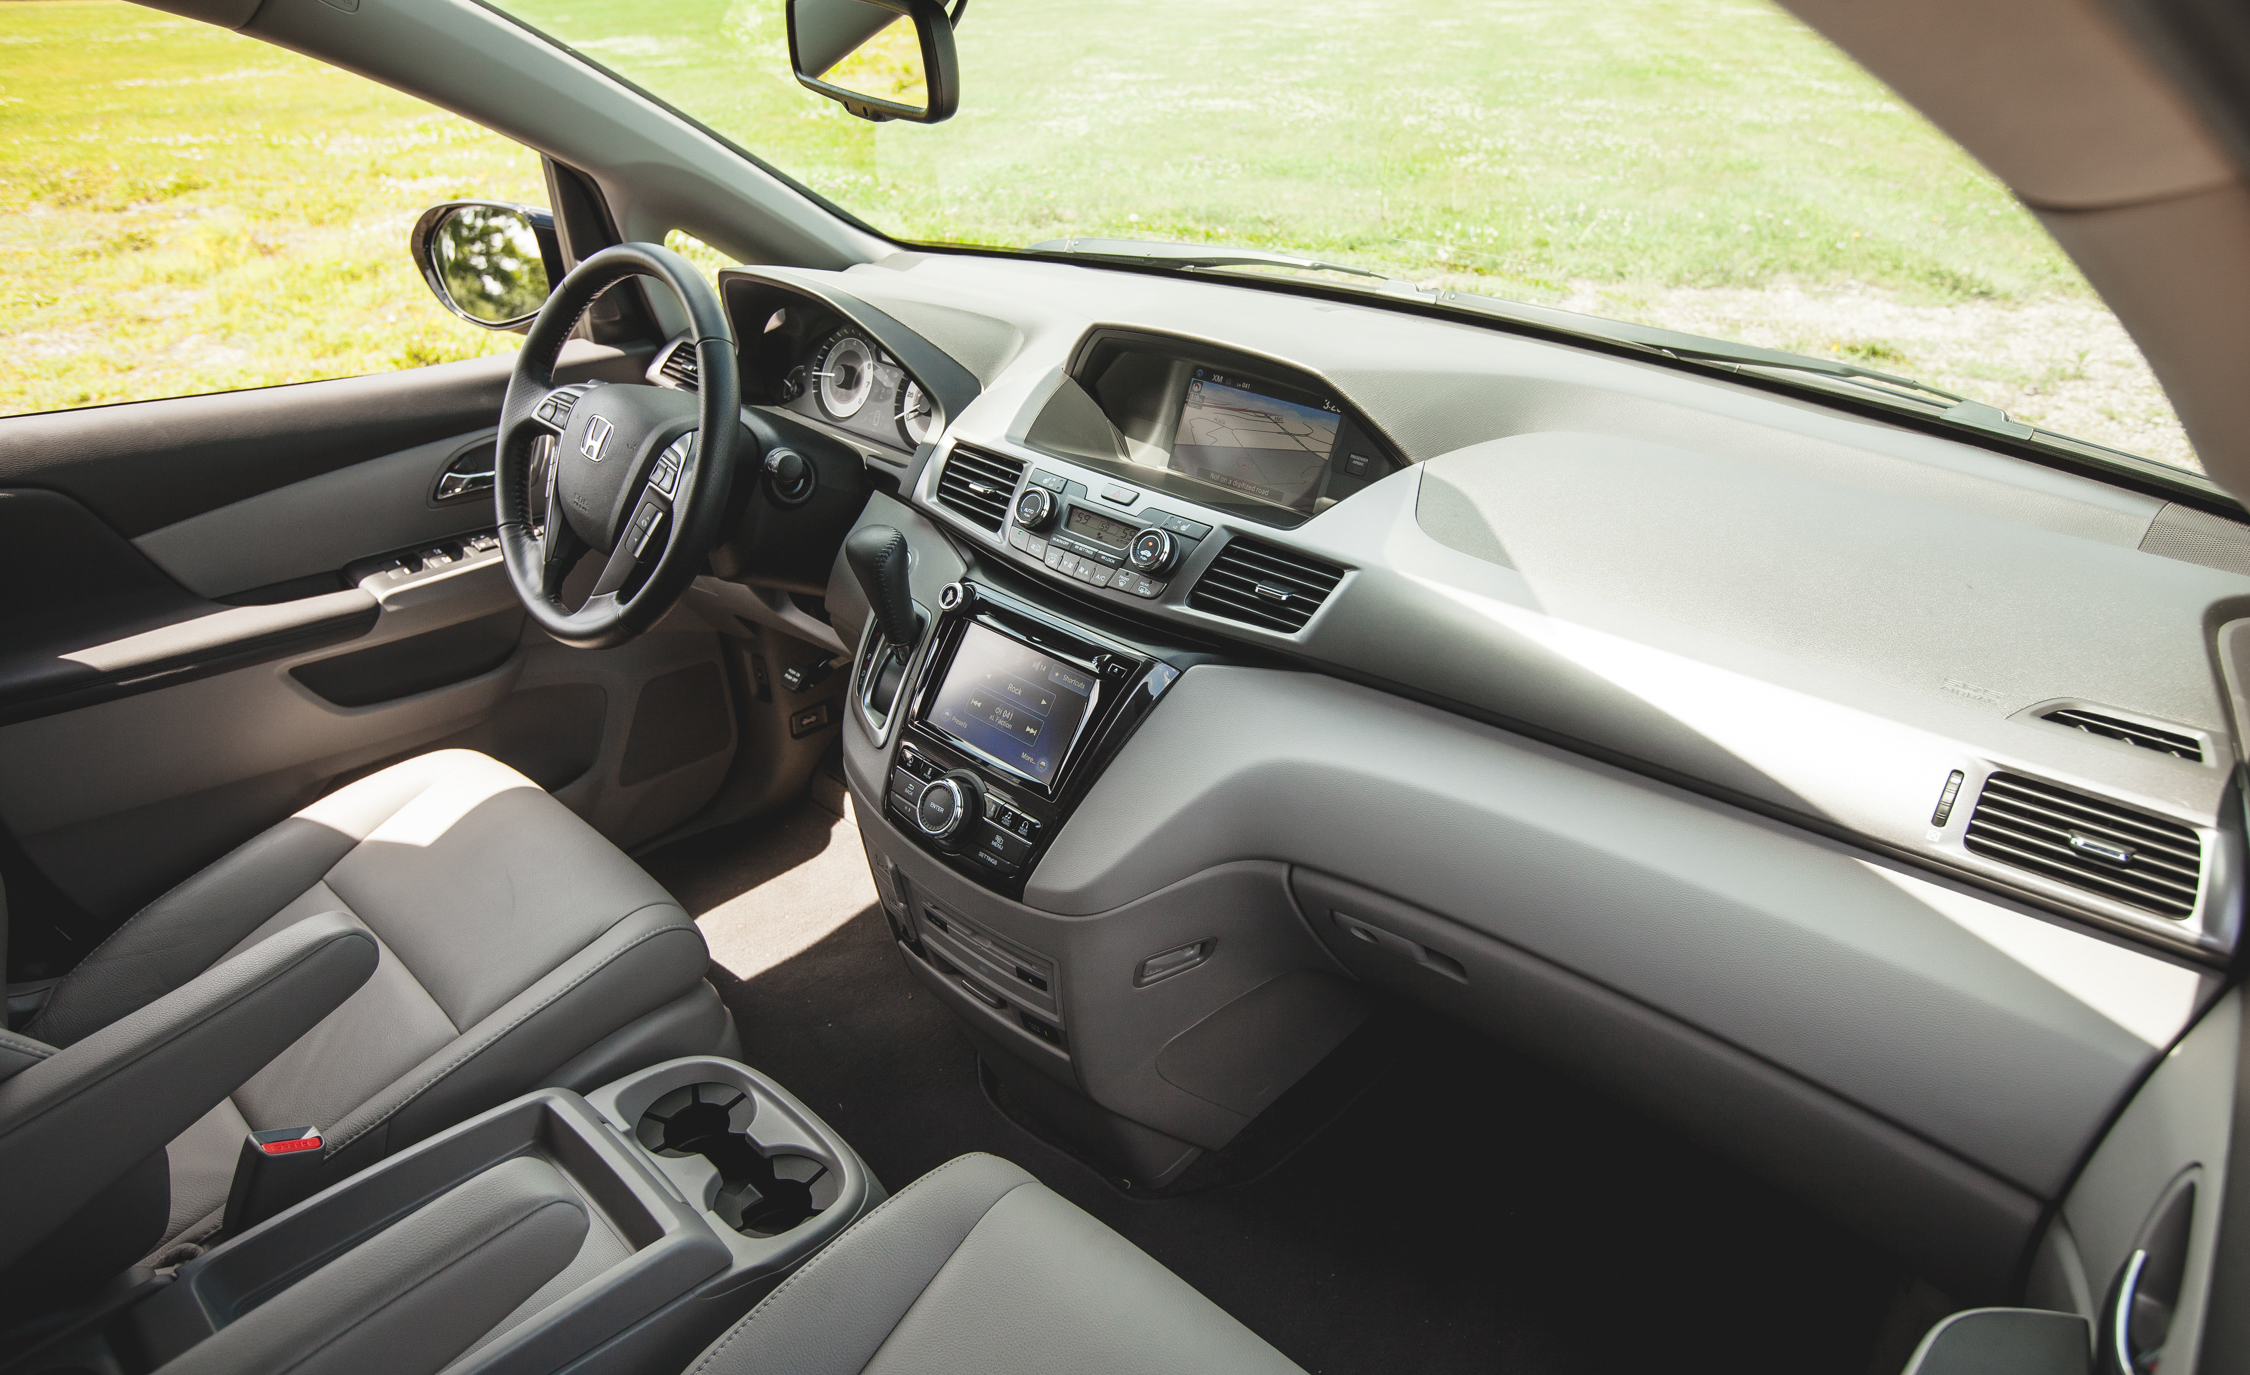 2014 Honda Odyssey Touring Elite Interior (View 6 of 19)